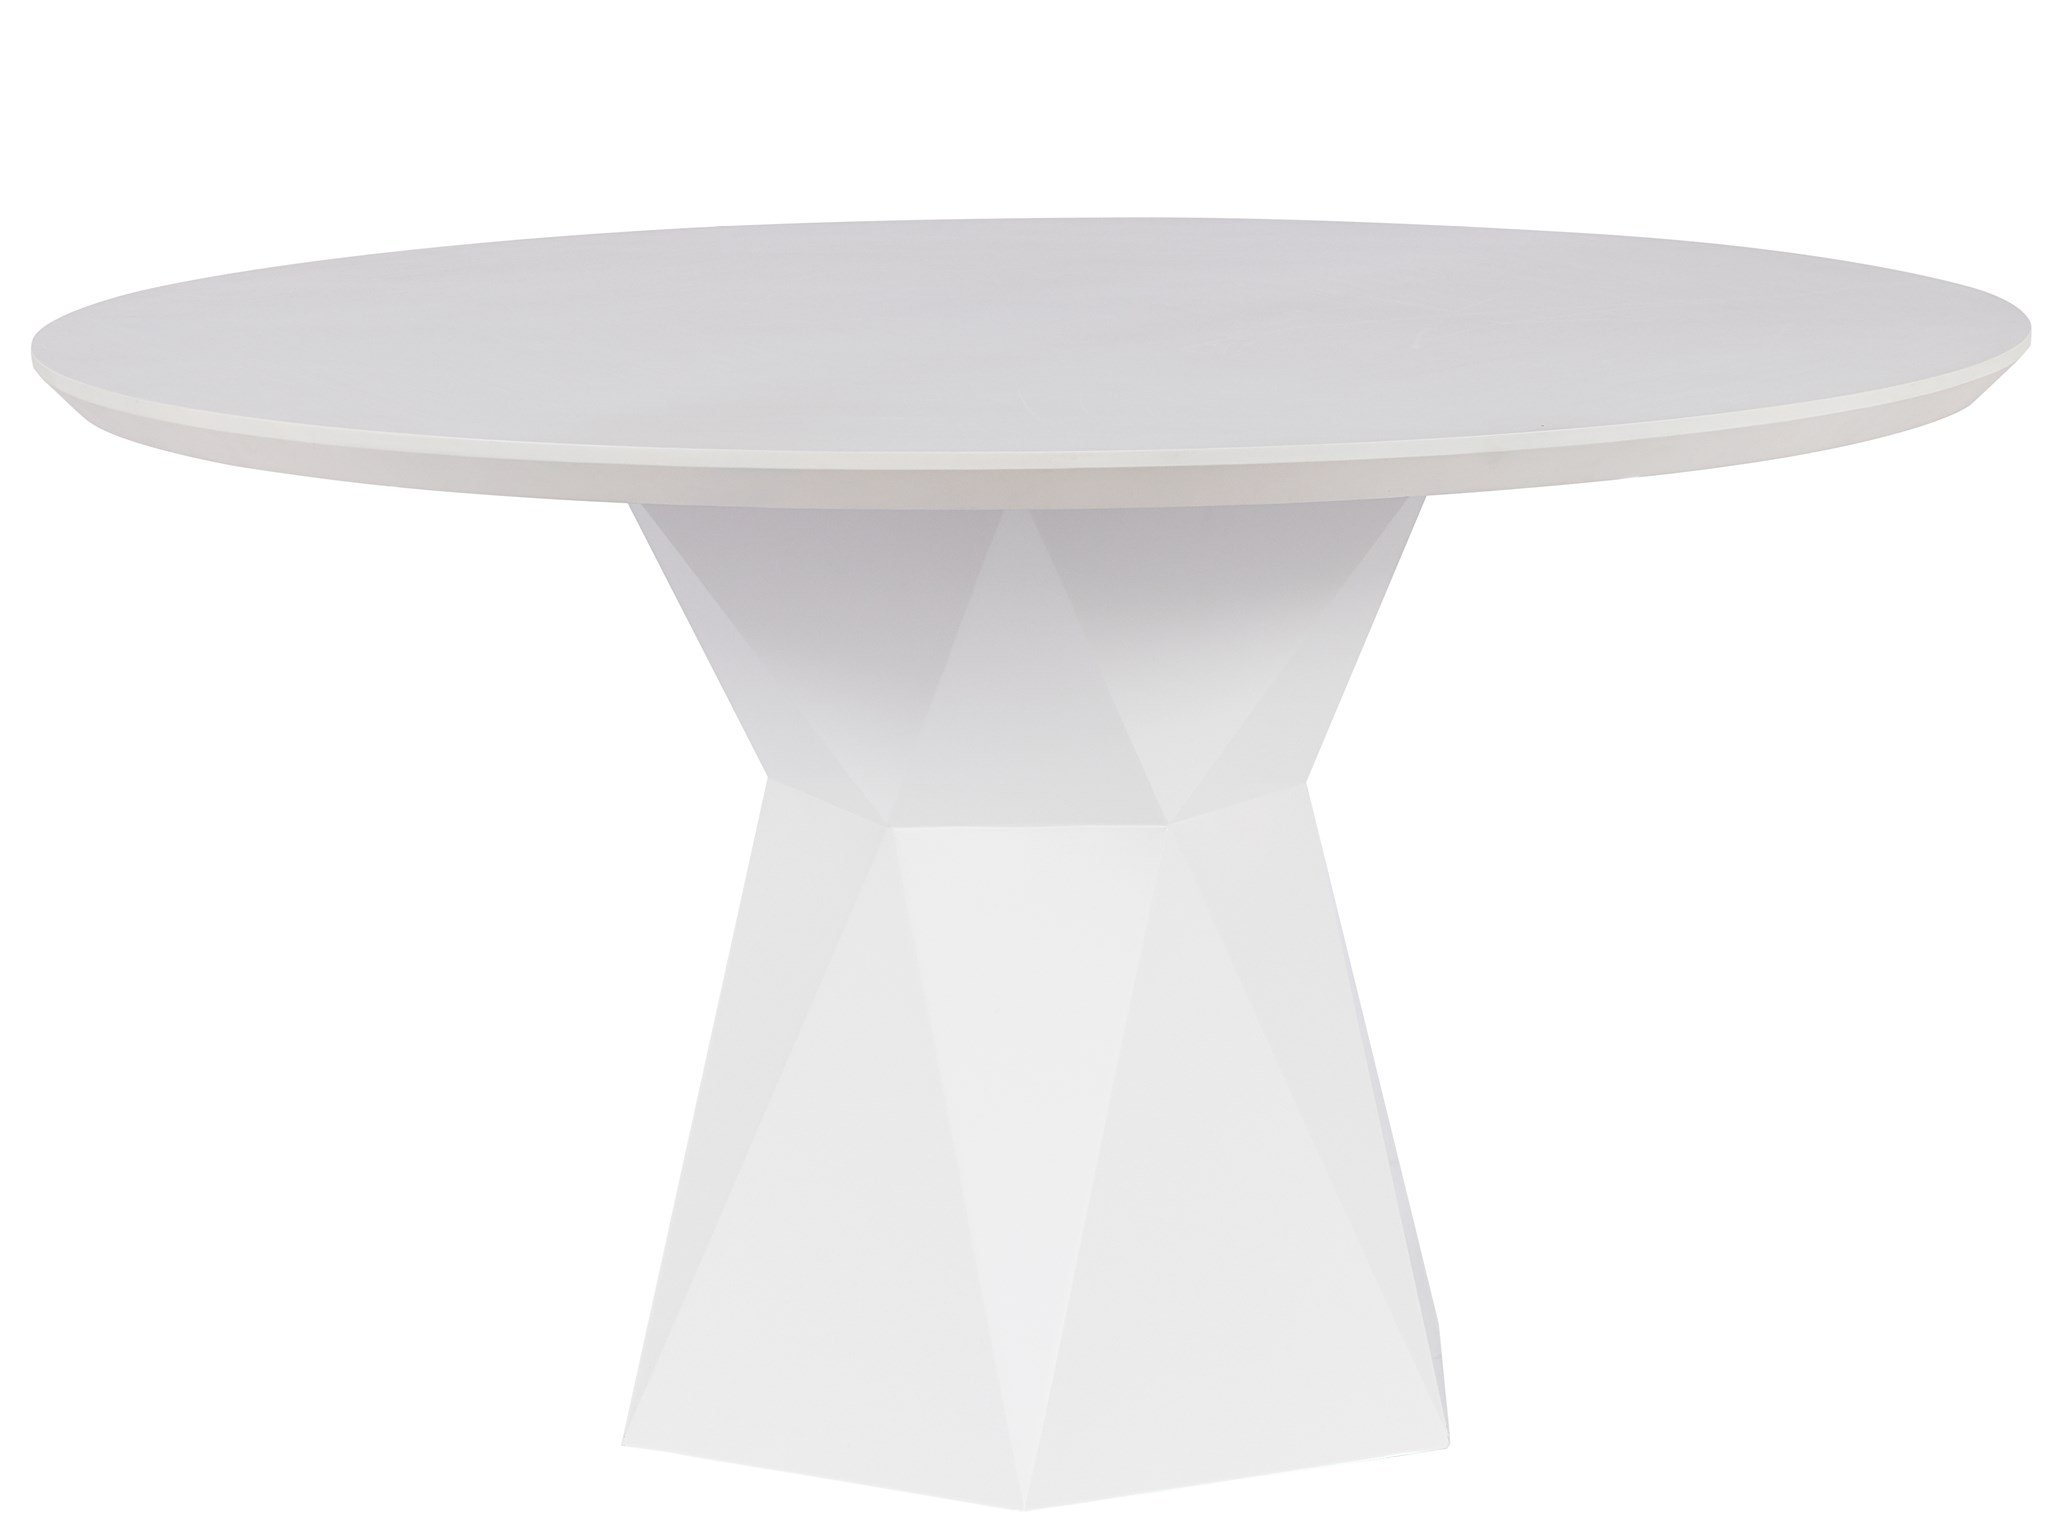 Geranium Dining Table